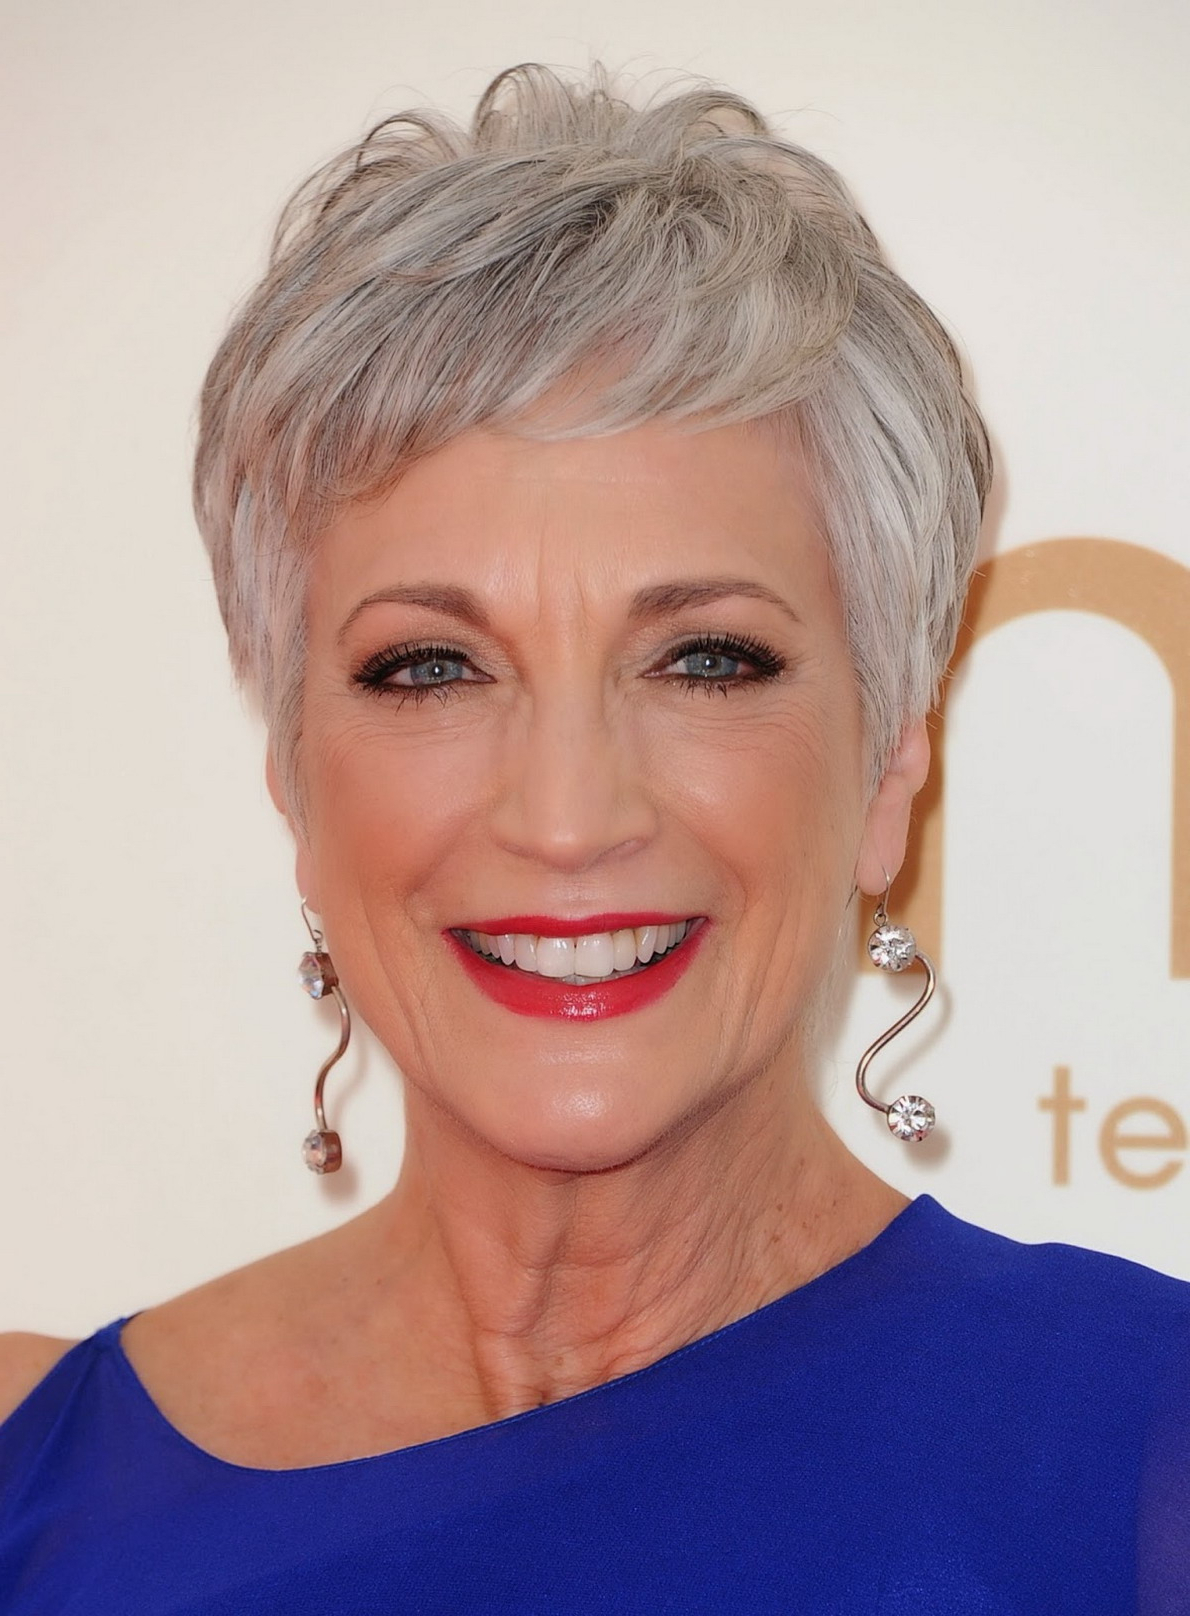 Short Haircuts Women Over 50 Very Short Hairstyles For Women Over 50 Intended For Short Hairstyles For Ladies Over  (View 6 of 25)